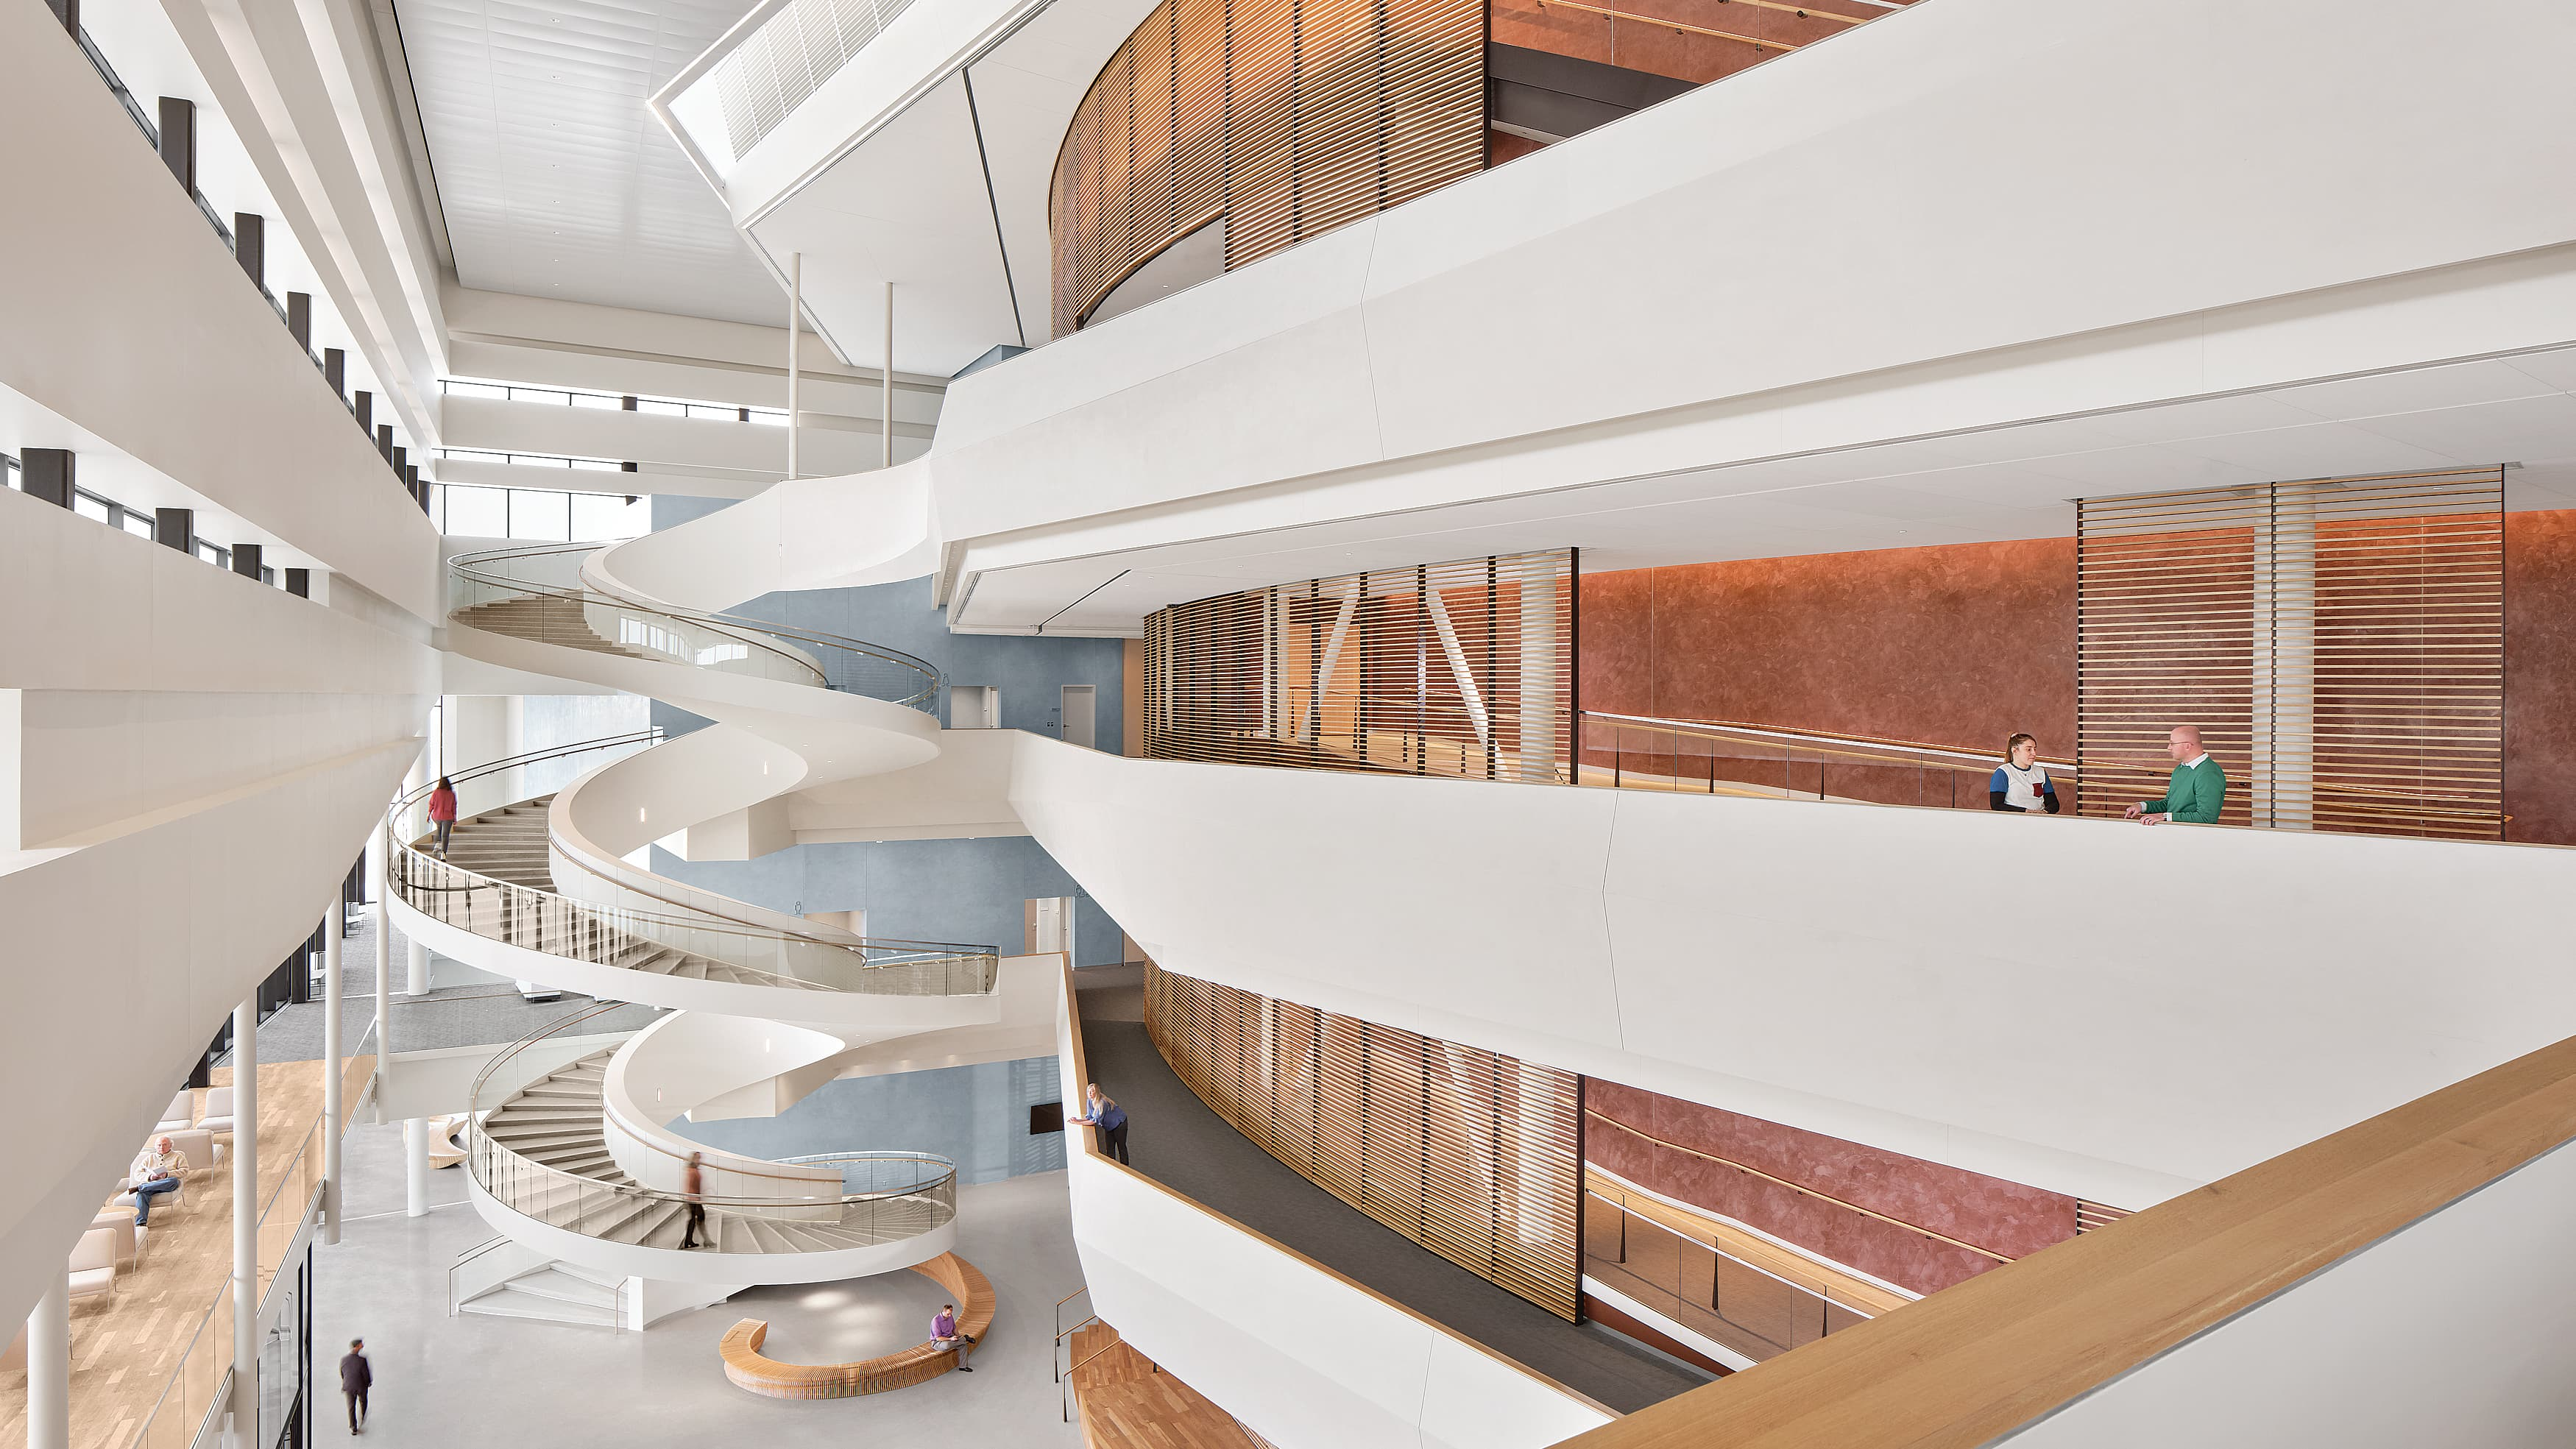 Interior of The Buddy Holly Hall of Performing Arts & Sciences in Lubbock, Texas.